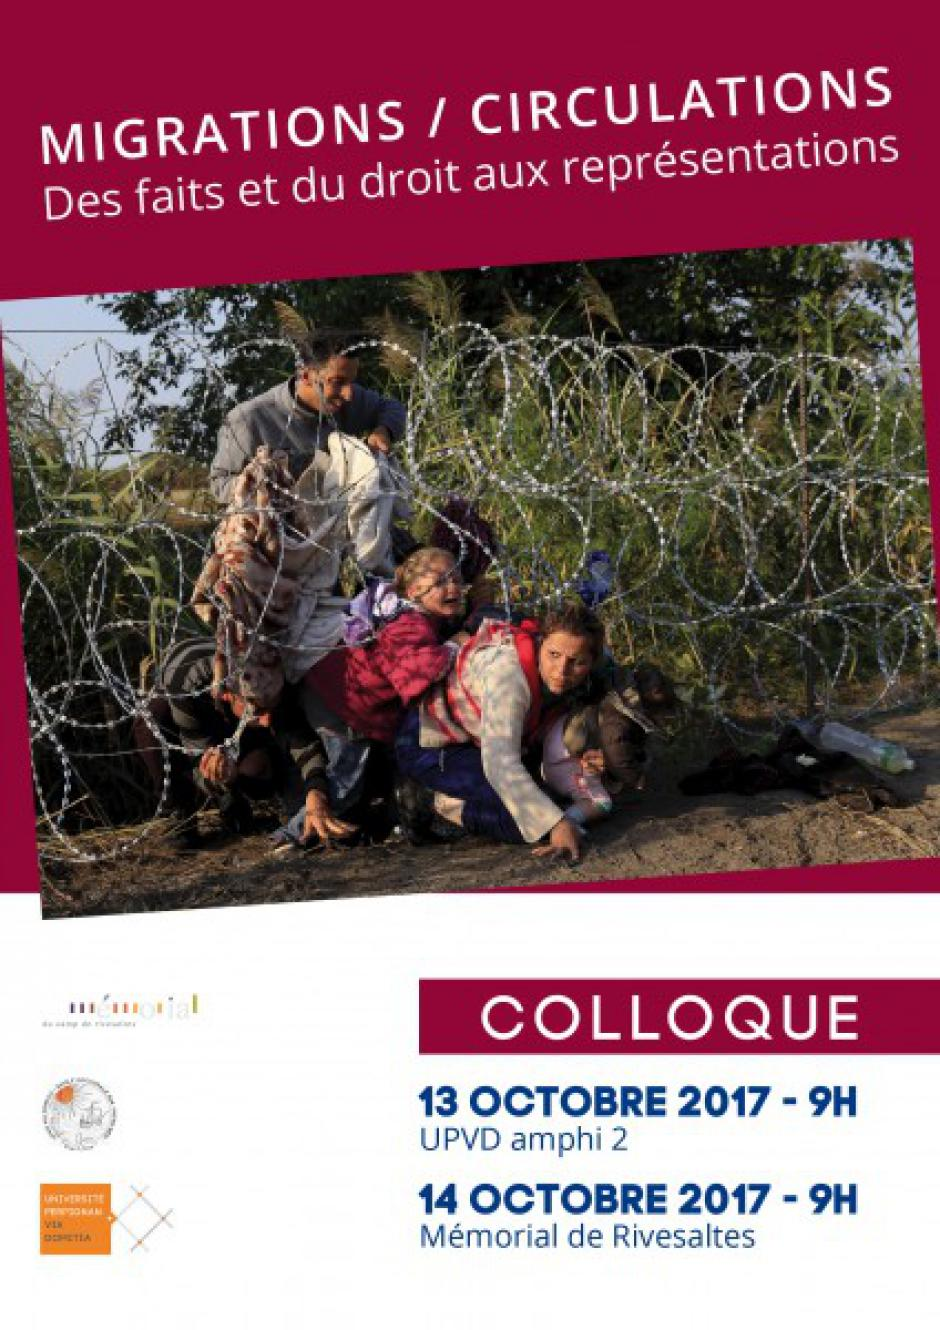 Colloque Migrations / Circulations